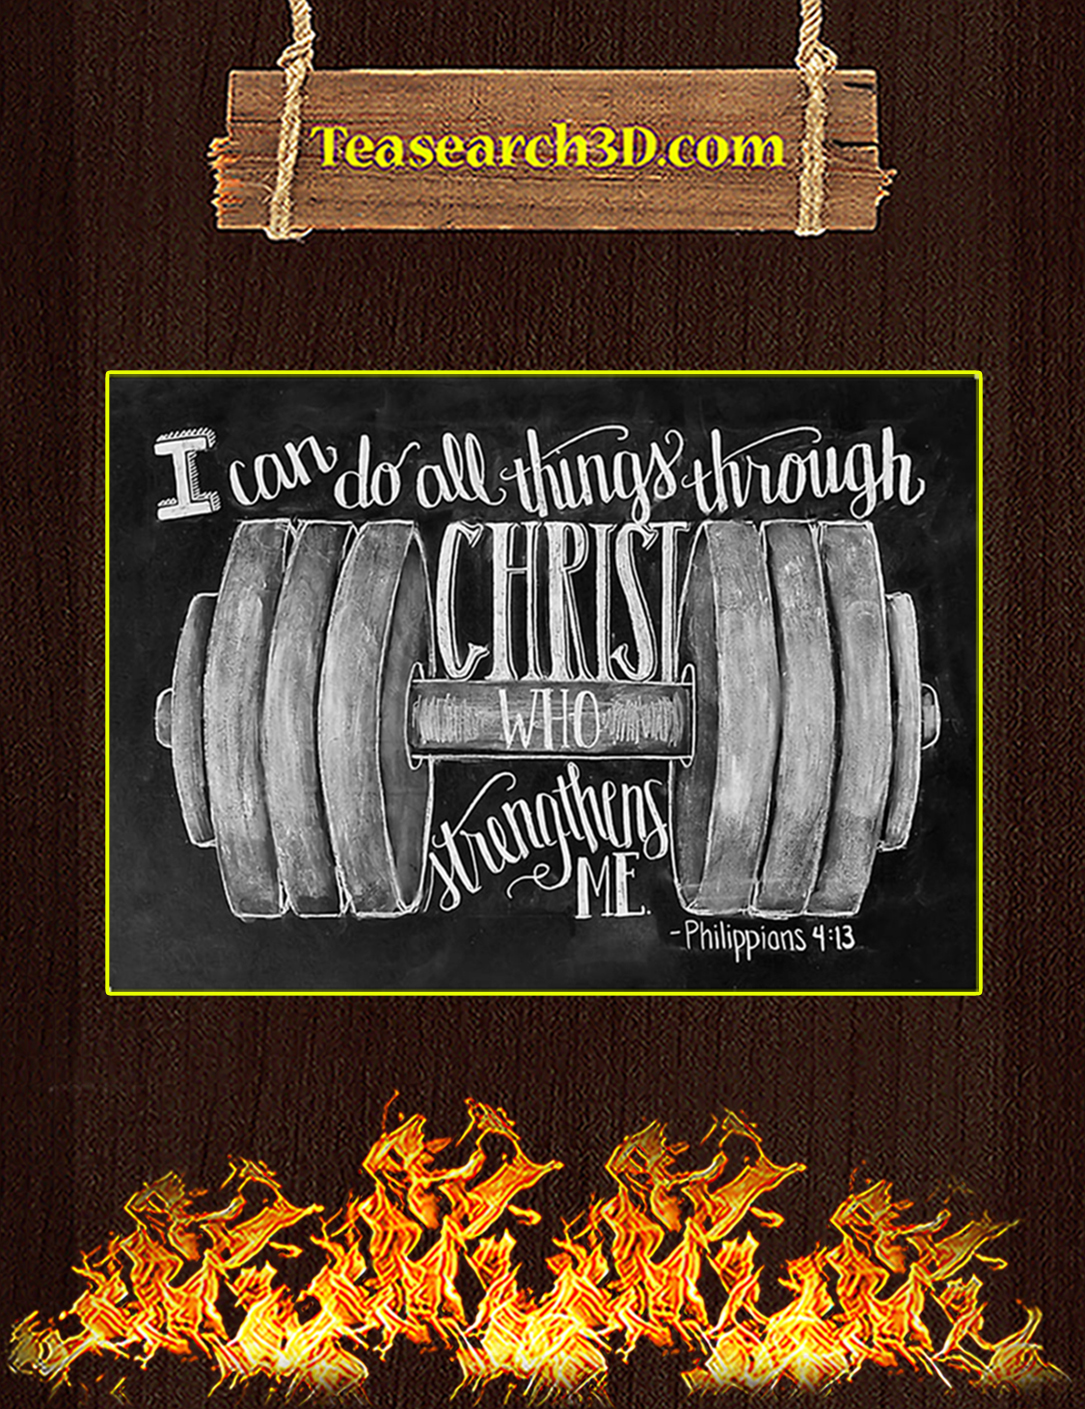 Fitness I can do all things through christ who strengthens me poster A2